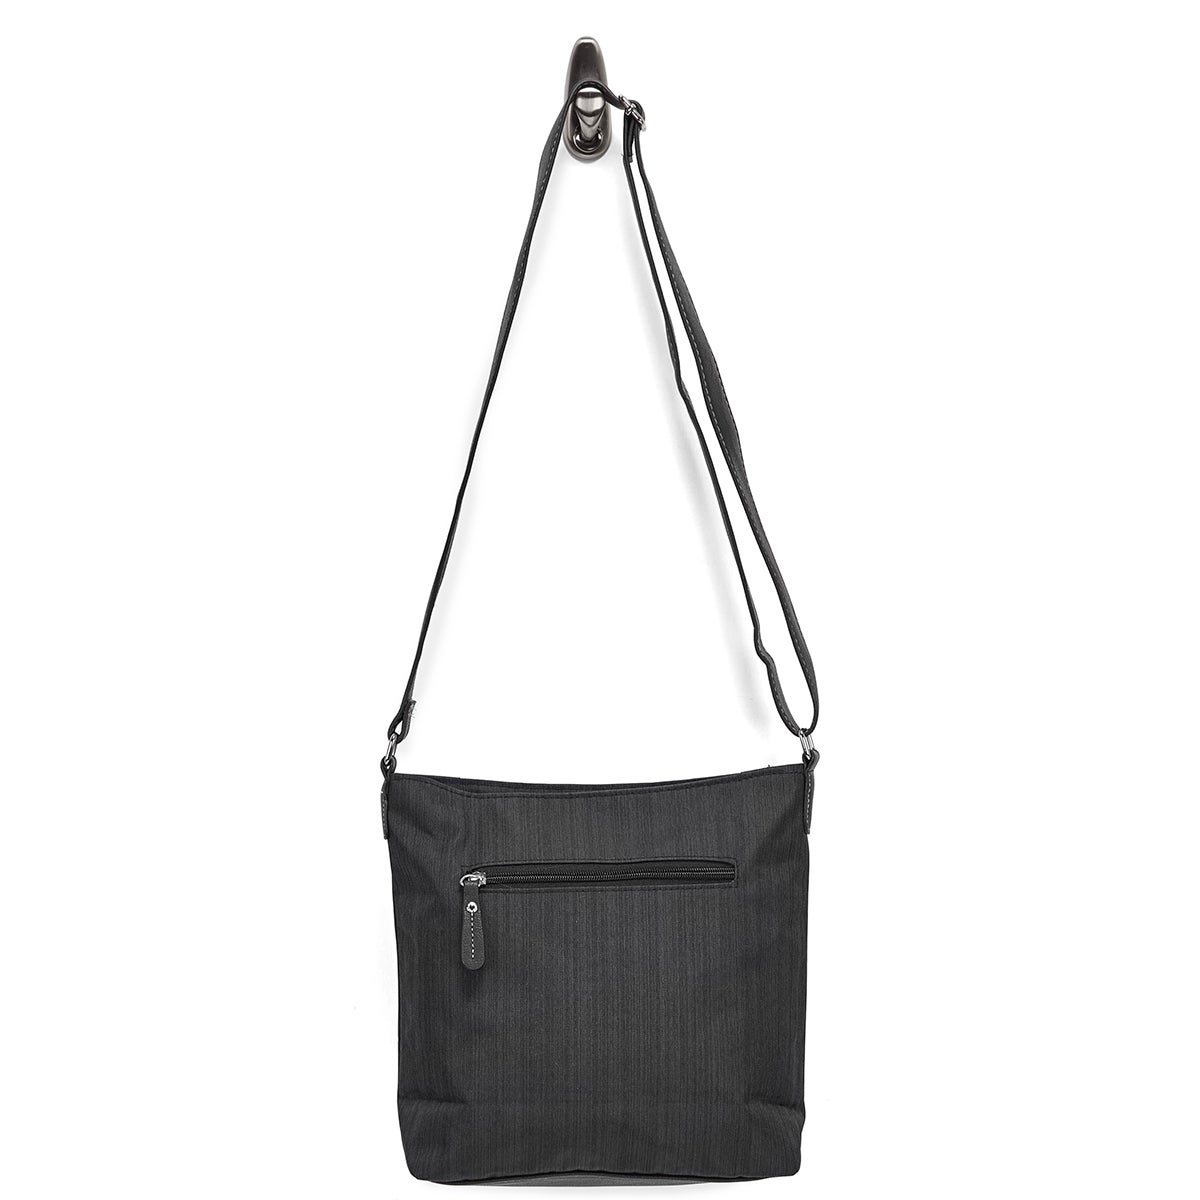 Lds blk double vertical pocket crossbody